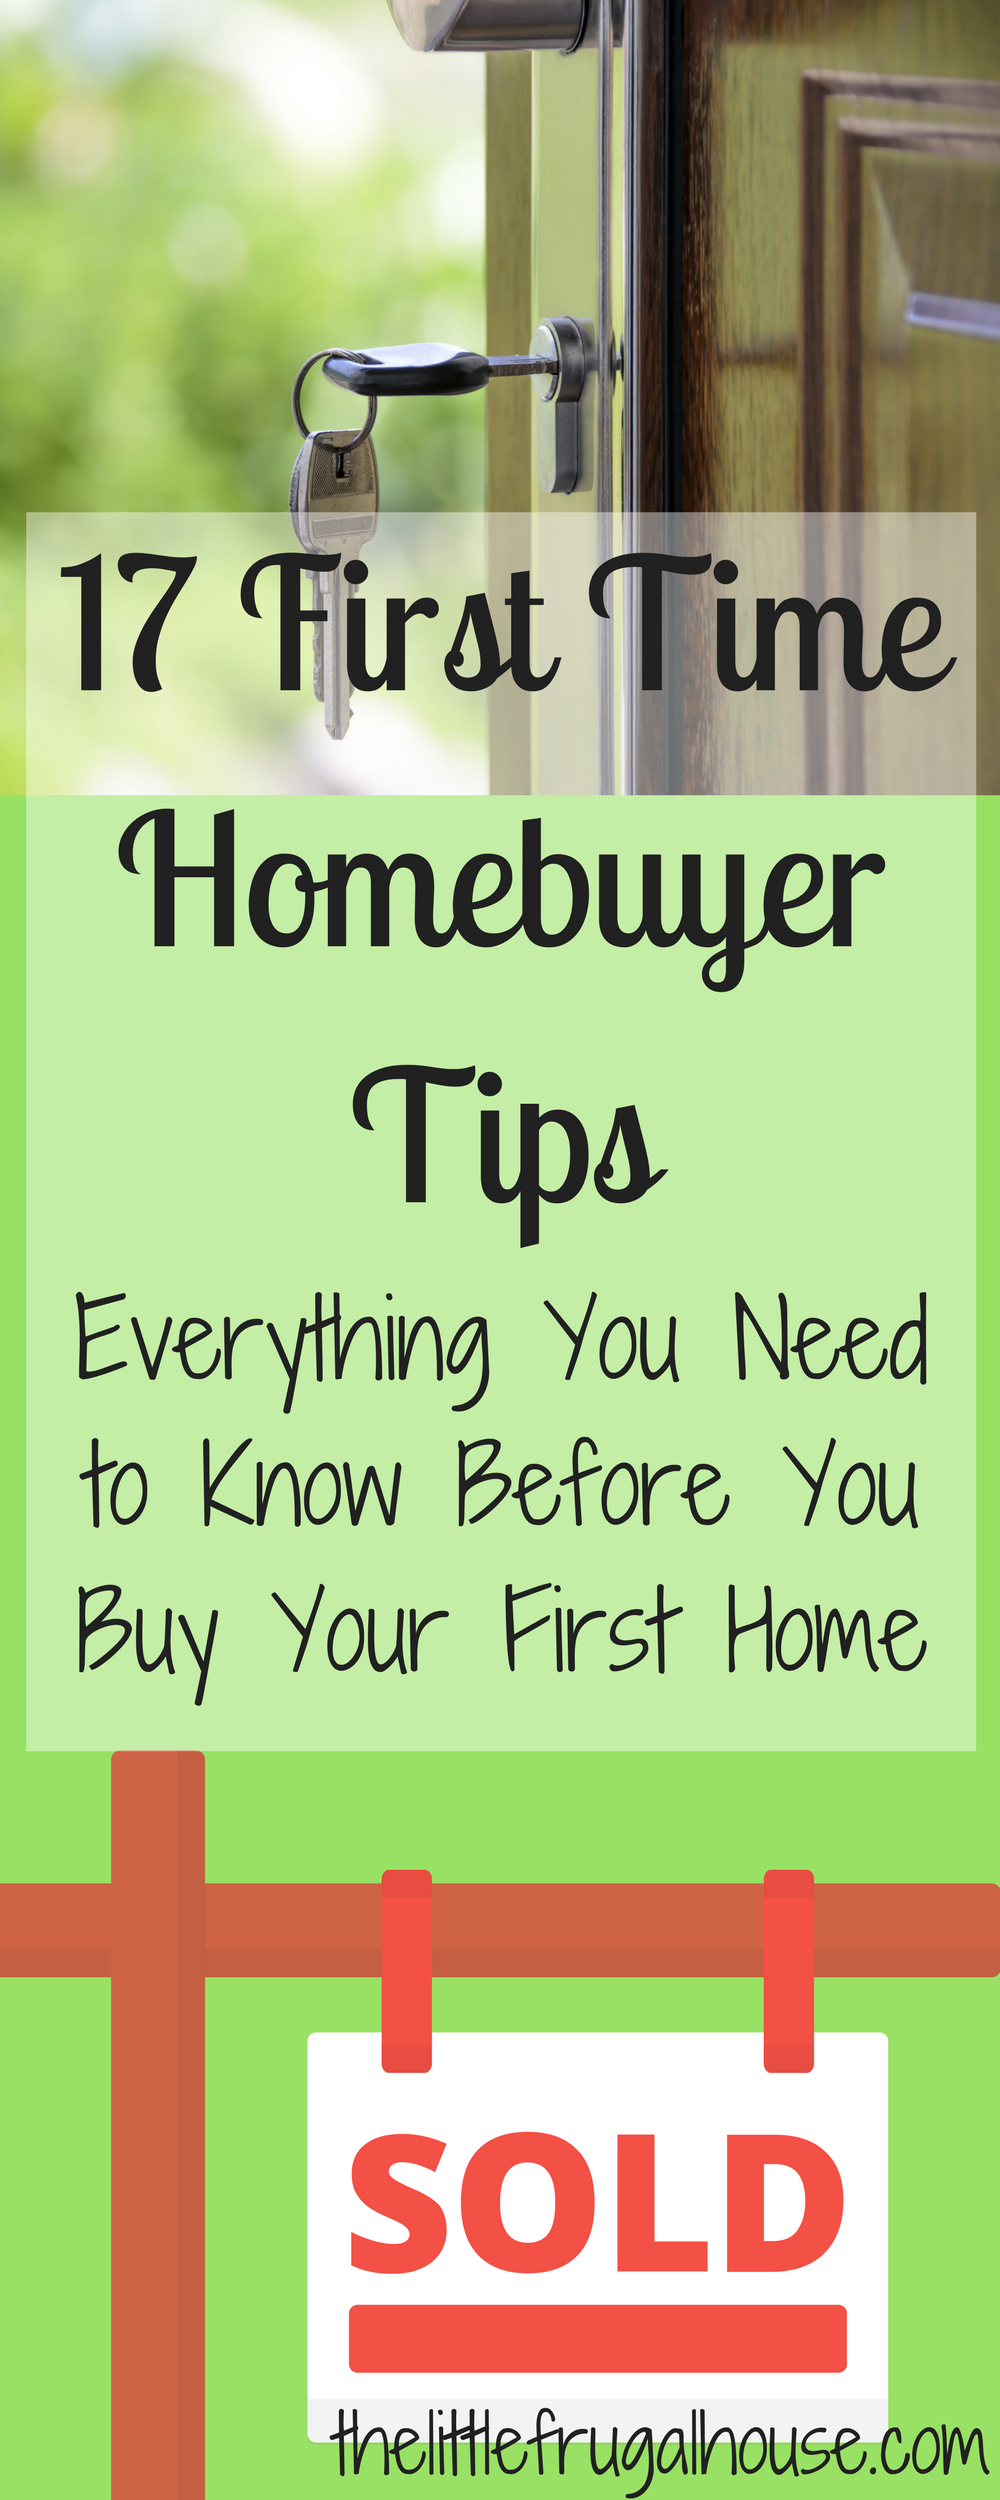 St Time Home Buyer Tips on home seller tips, home inspection tips, home selling tips, home business tips, home owners tips, home staging tips,